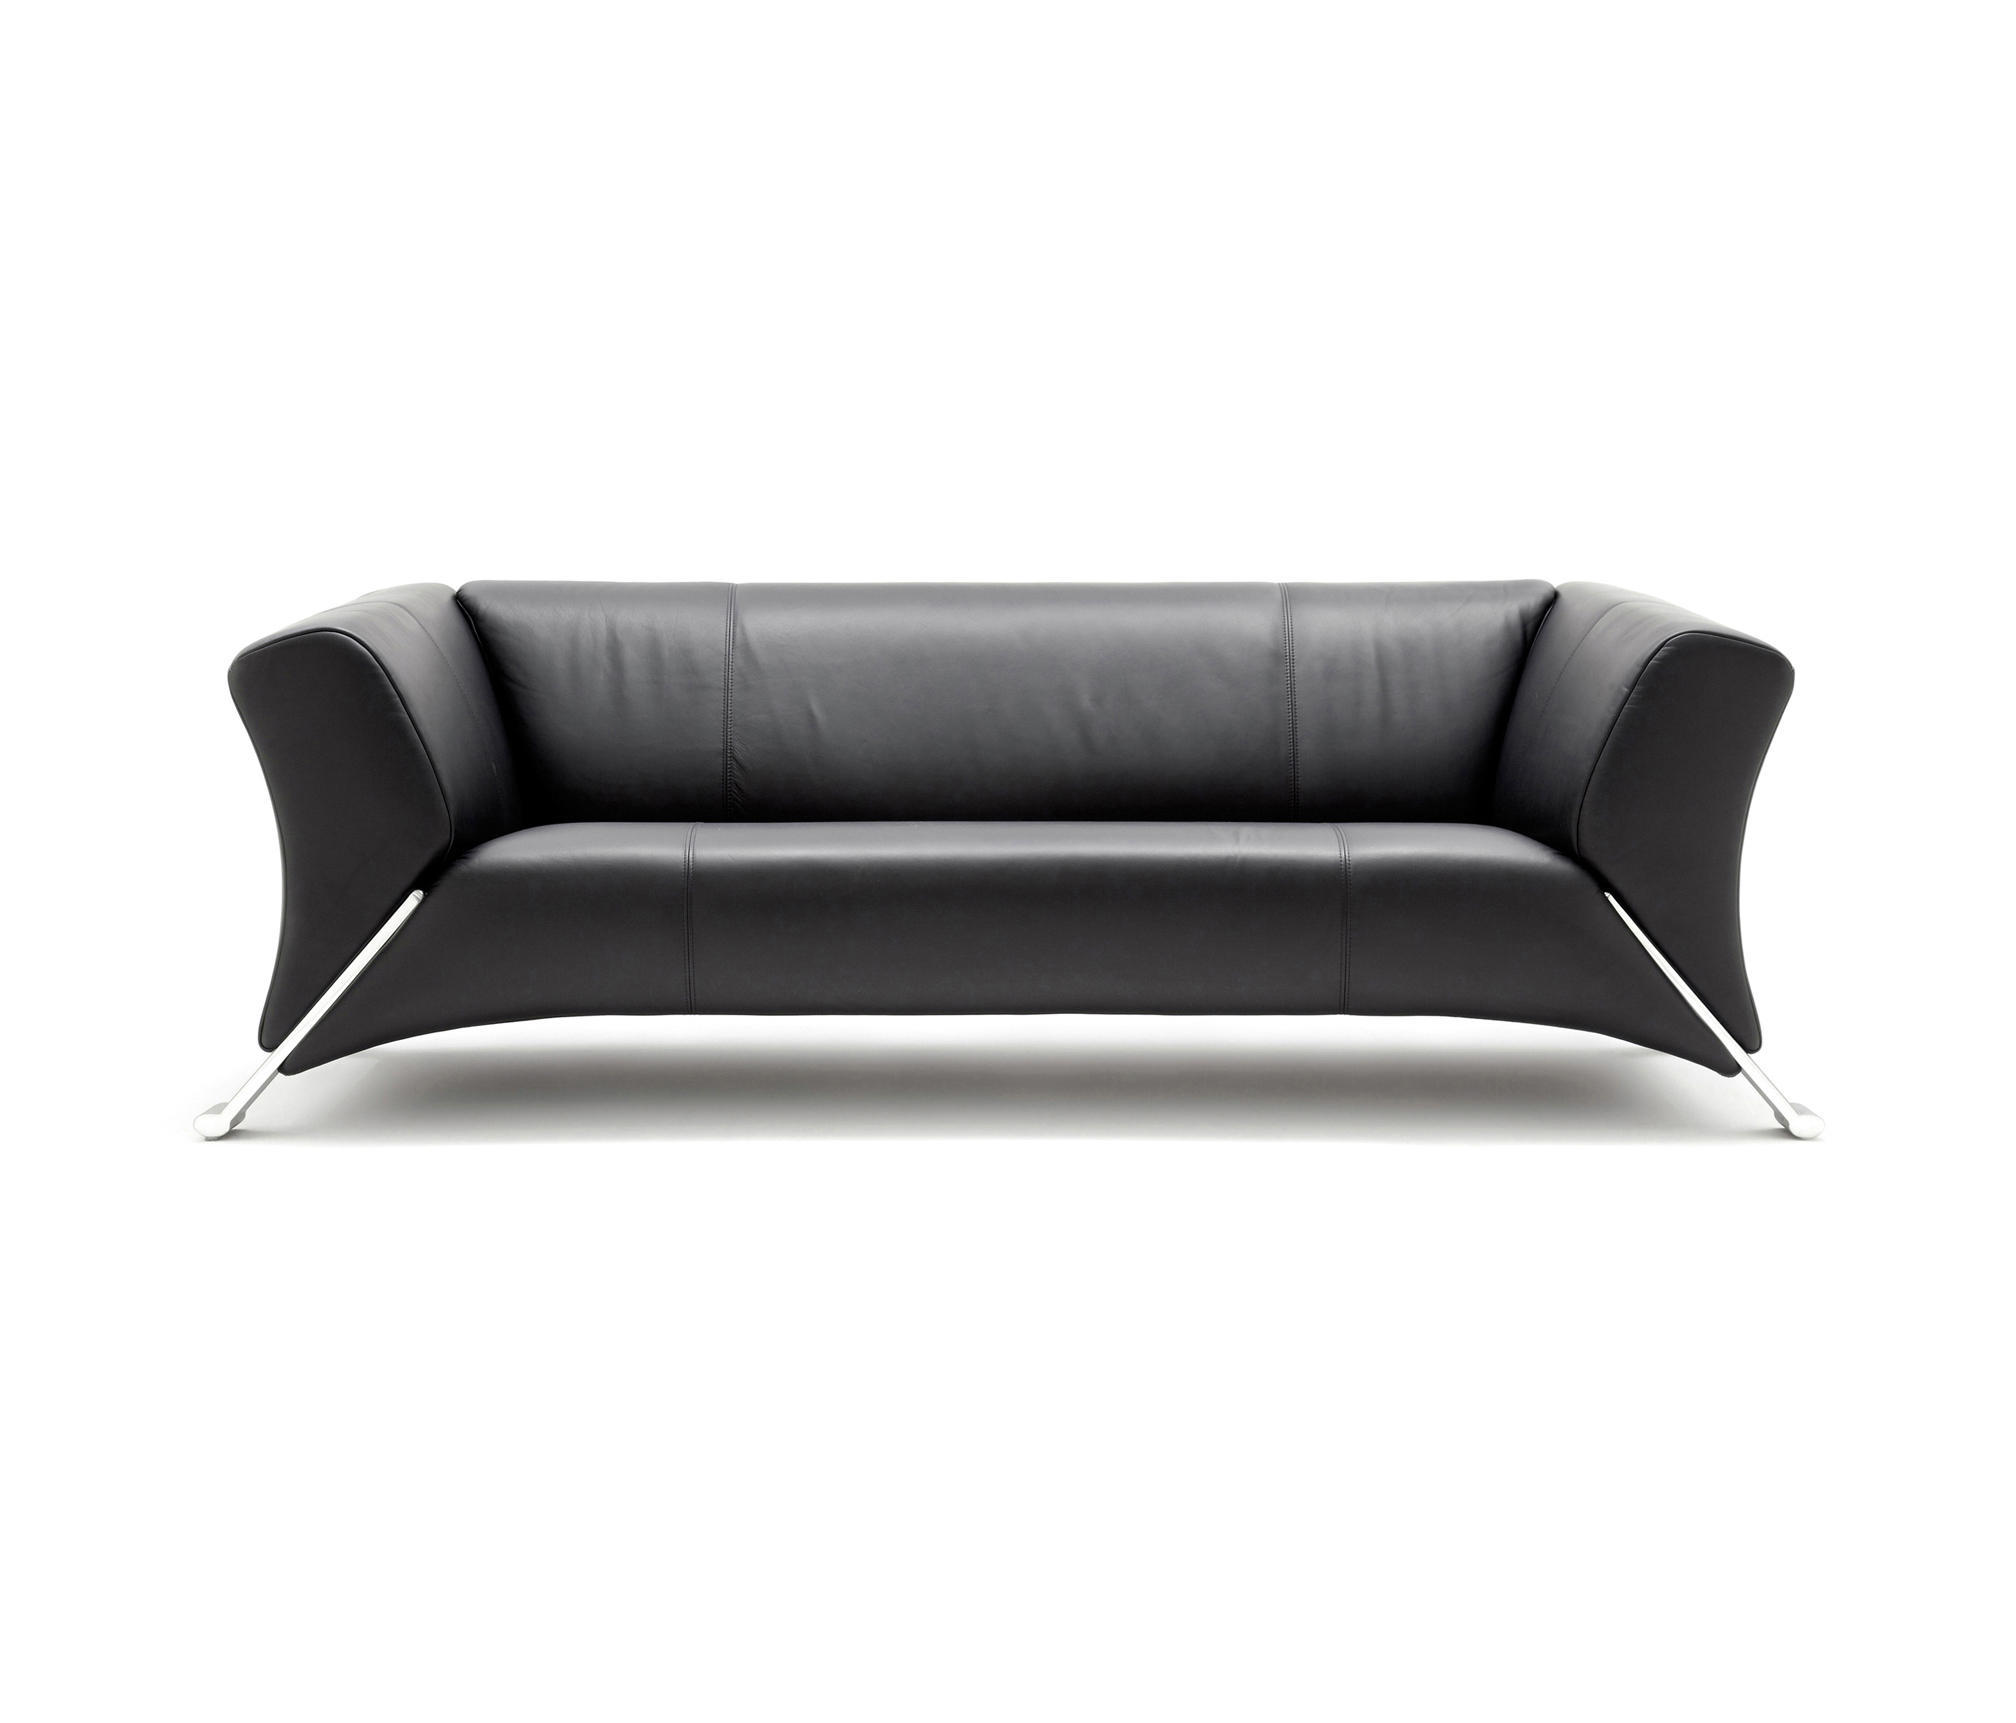 rolf benz 322 loungesofas von rolf benz architonic. Black Bedroom Furniture Sets. Home Design Ideas